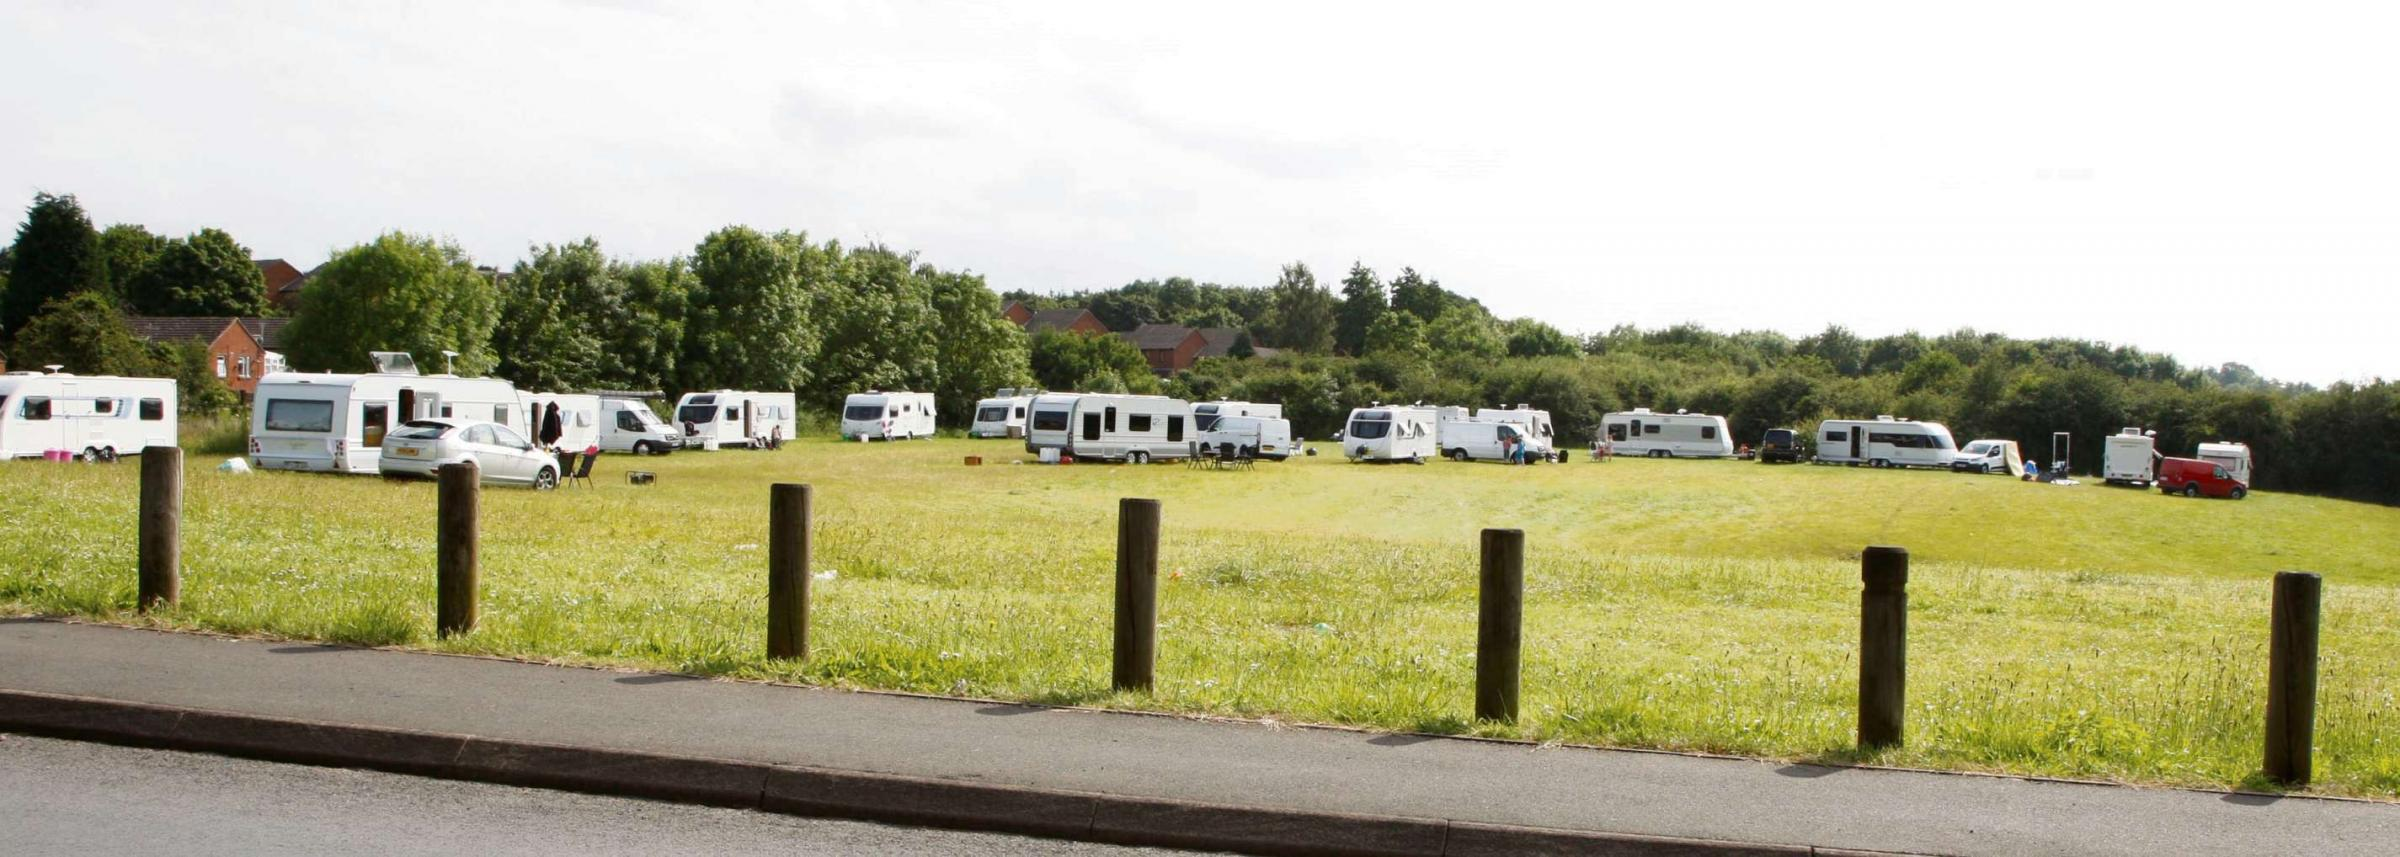 Sir Peter questions police powers to evict Gyspy camp in Droitwich